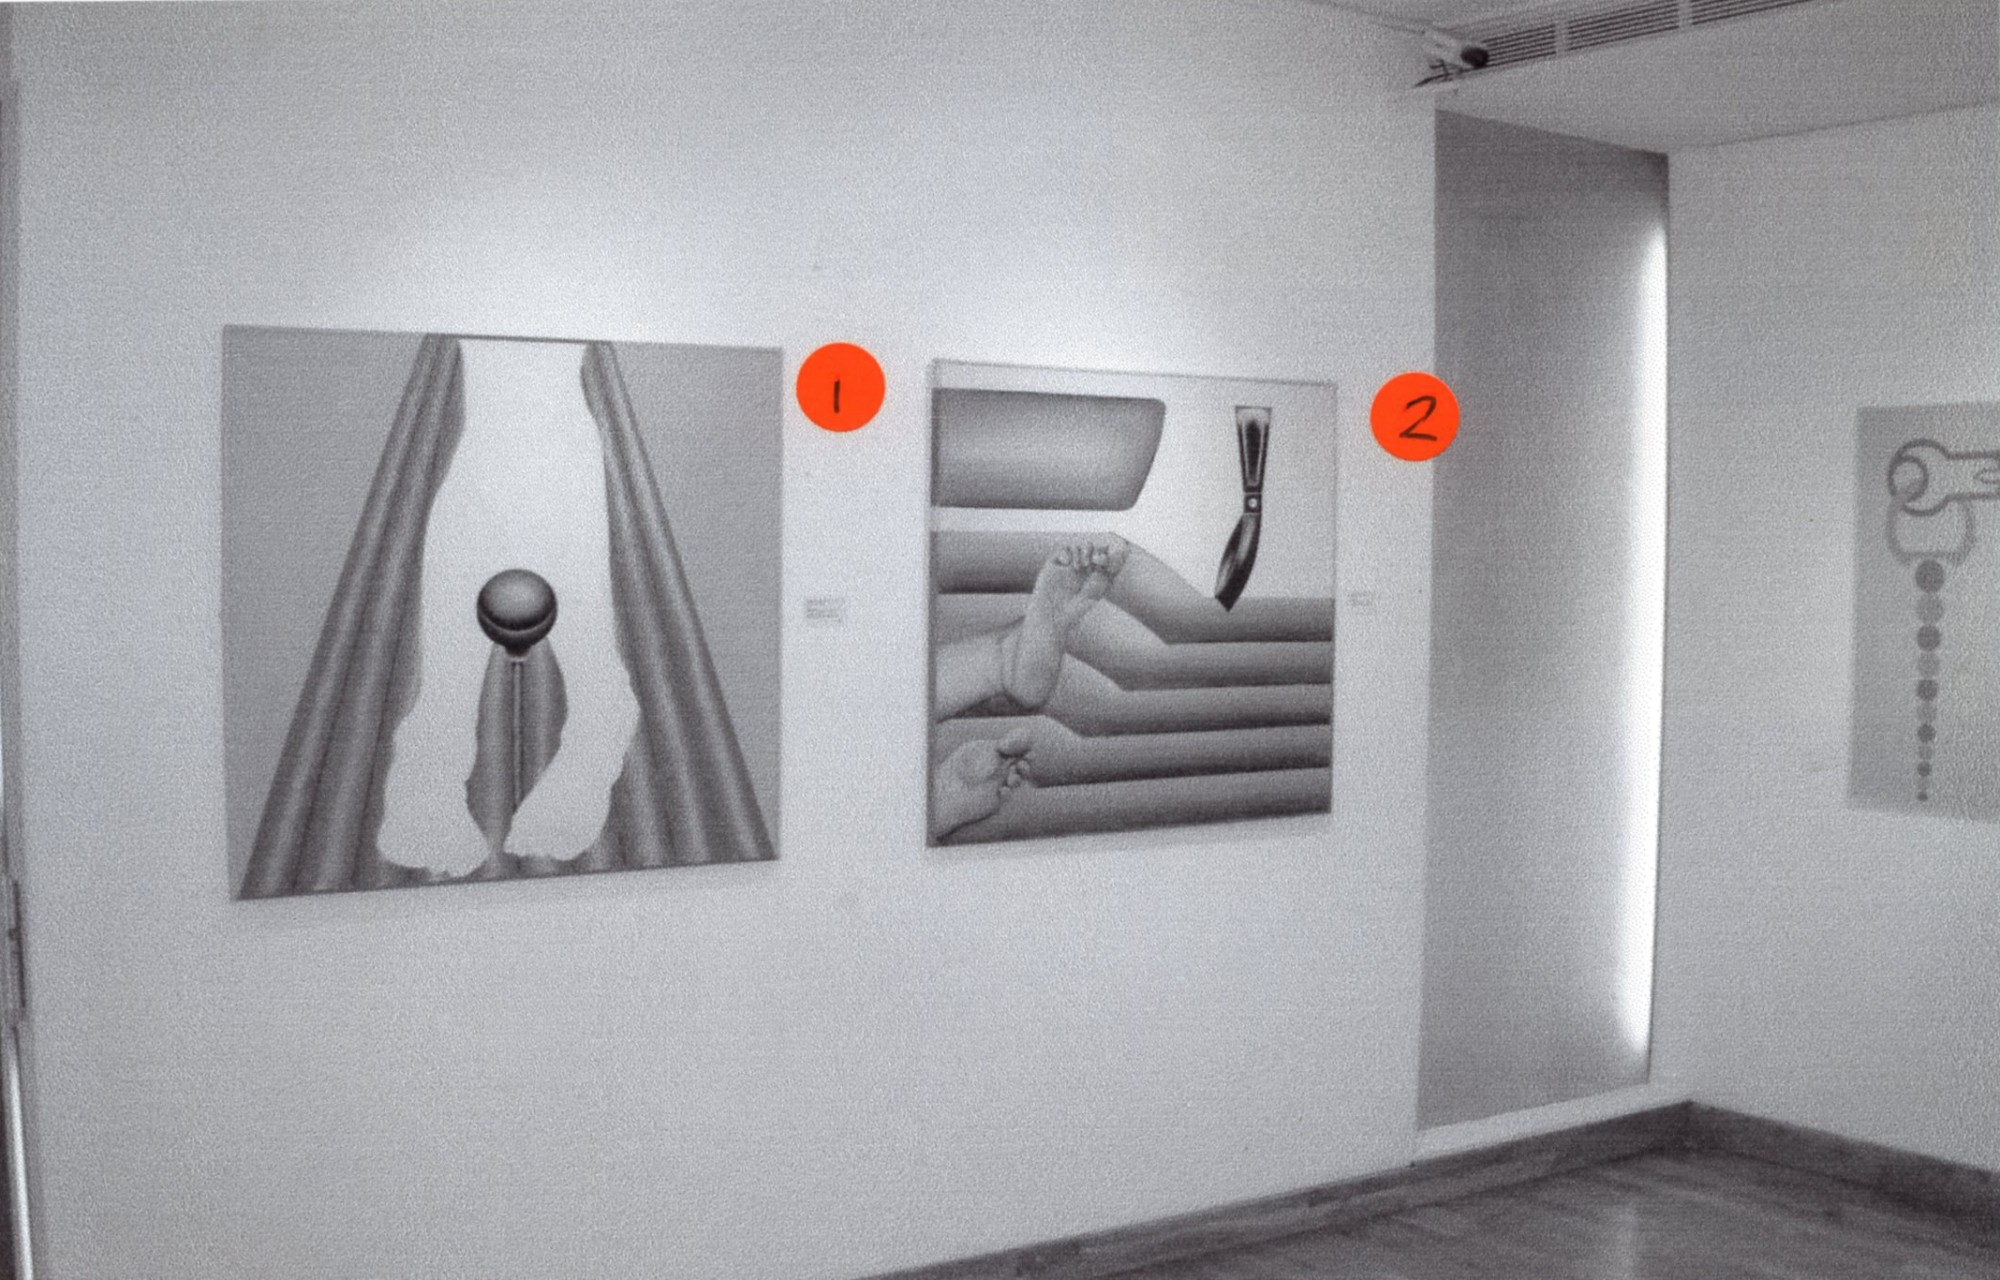 """<span class=""""link fancybox-details-link""""><a href=""""/exhibitions/131/works/image_standalone543/"""">View Detail Page</a></span><p>EVELYNE AXELL   EROTOMOBILES   05 JUN - 31 AUG 2003   Installation View</p>"""